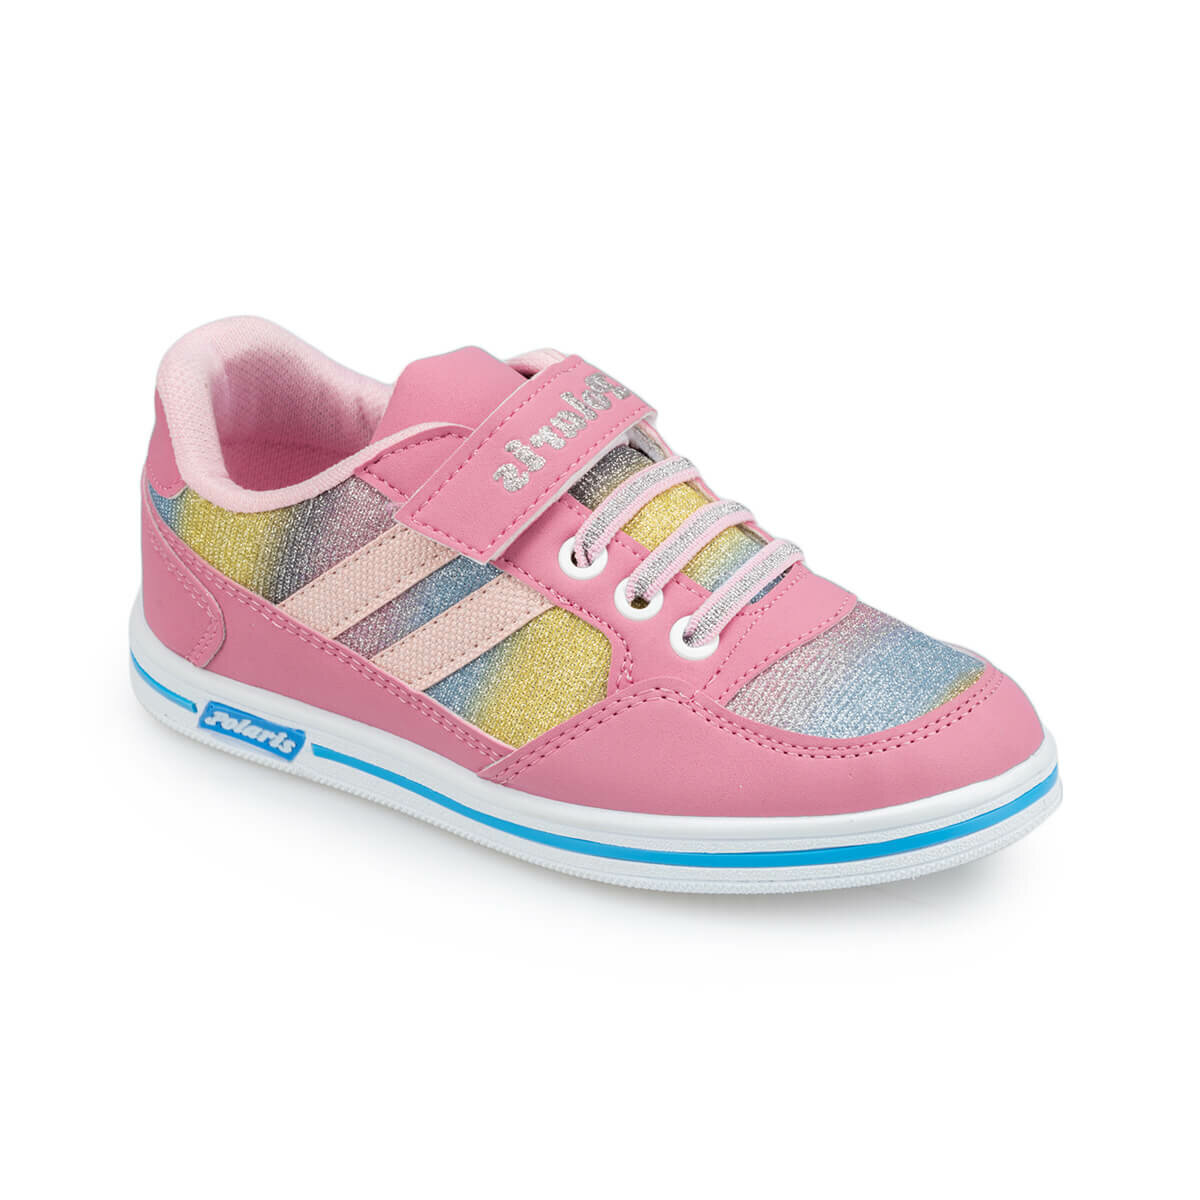 FLO 91.509314.F Pink Female Child Sneaker Shoes Polaris